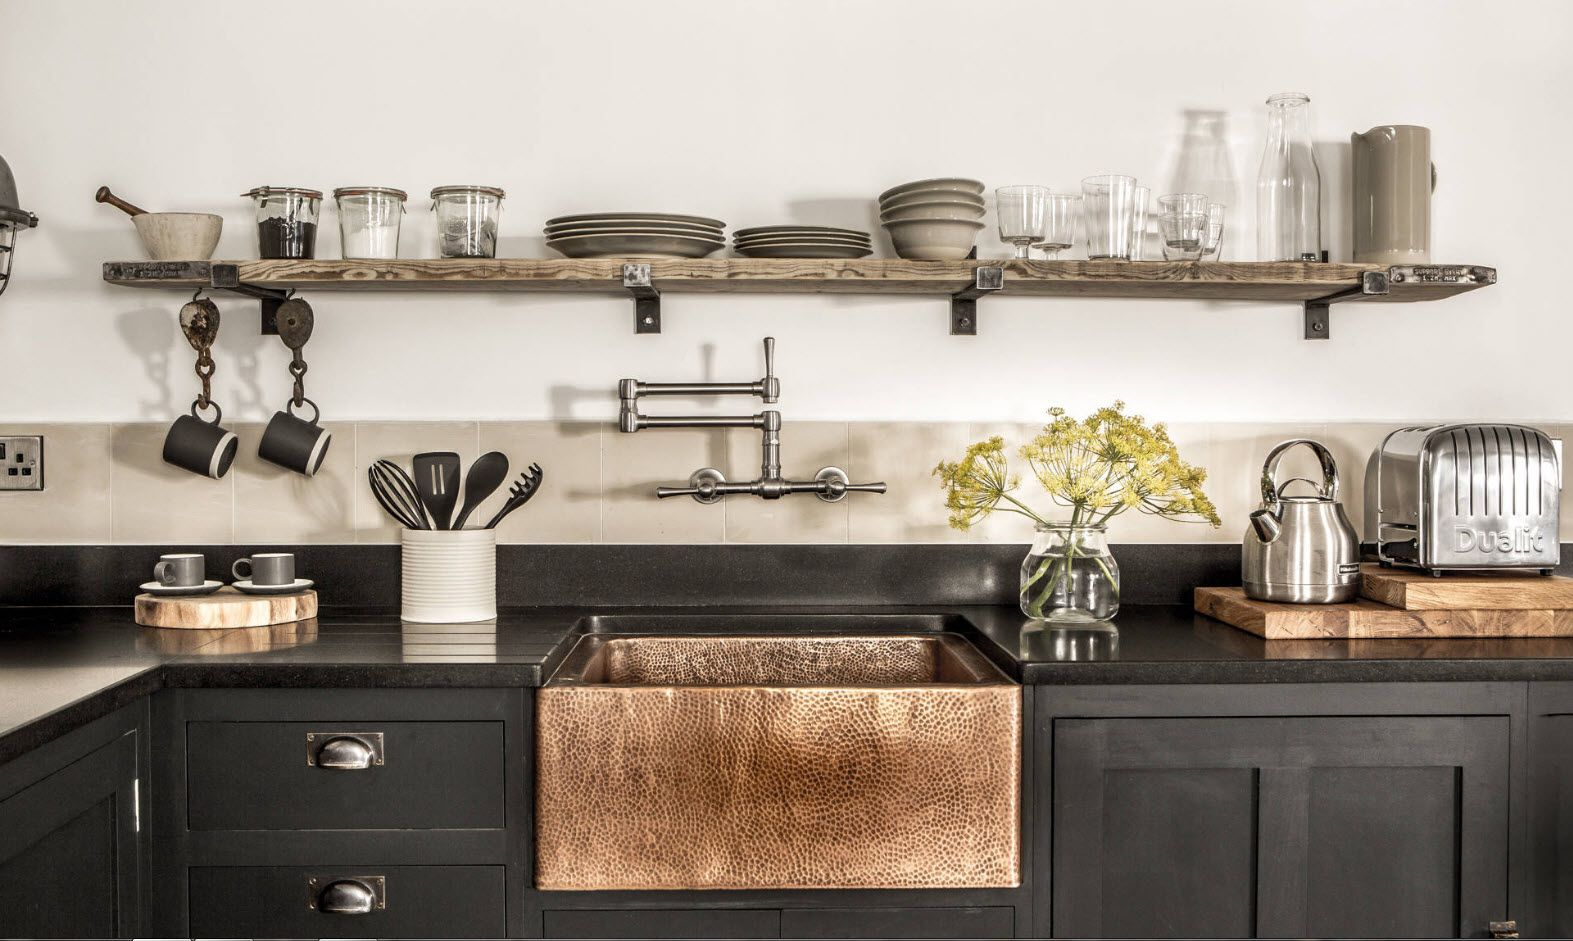 Copper yellow sink within the rustic kitchen design